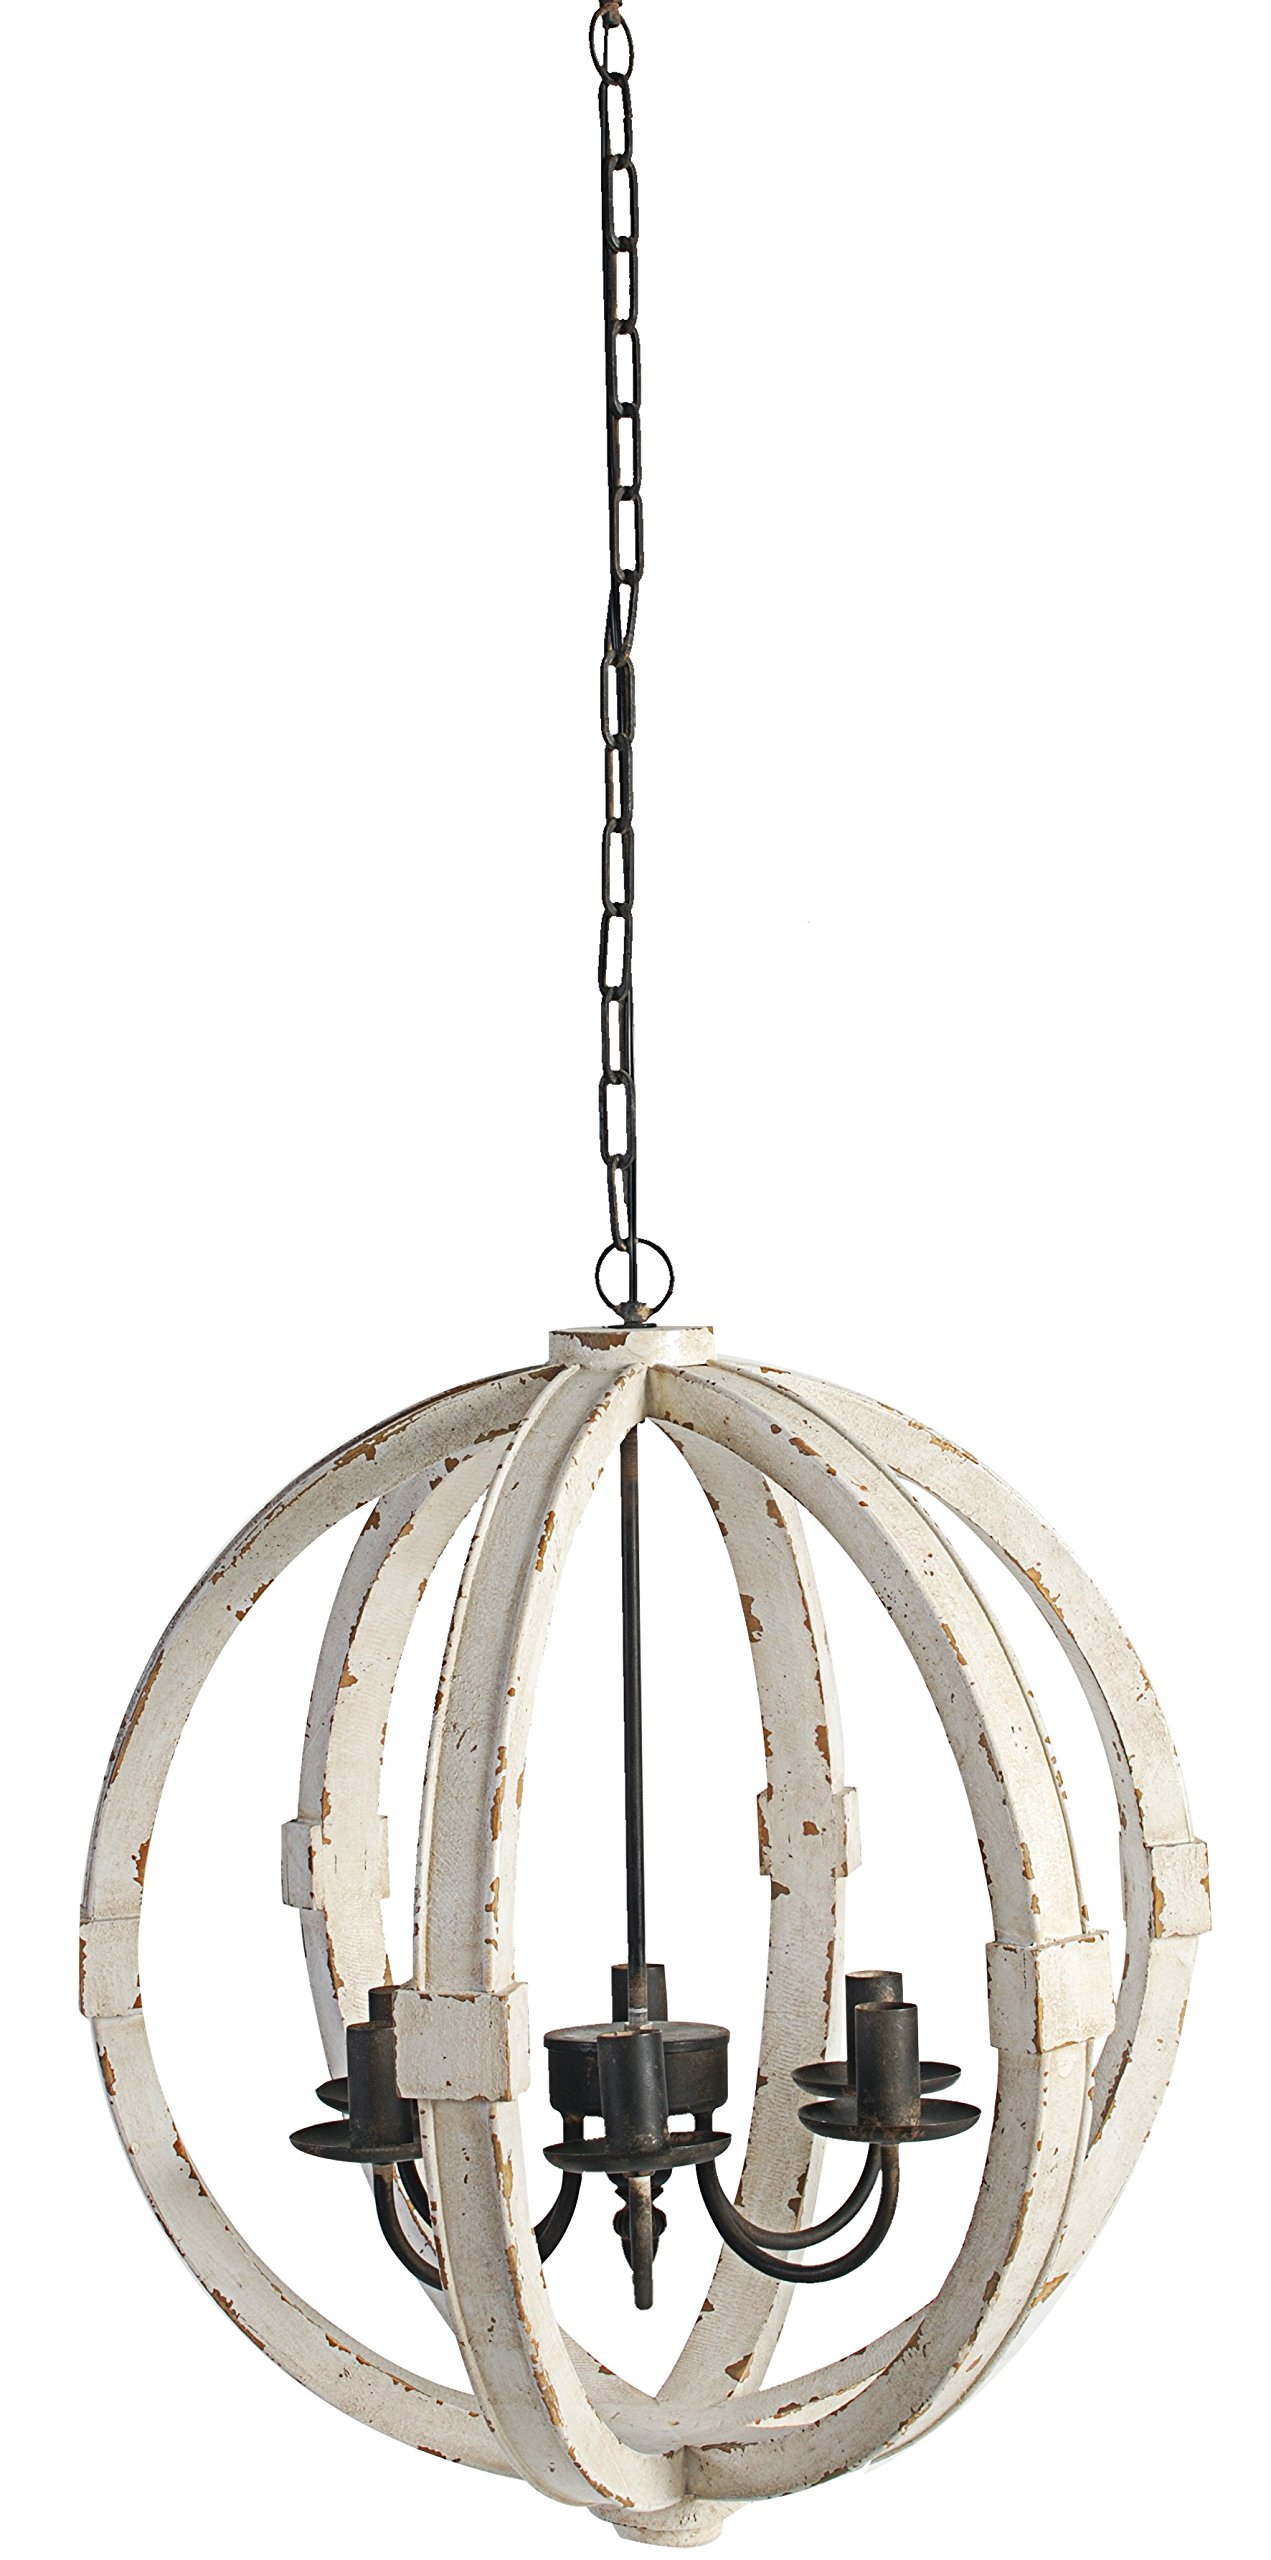 A&B Home Calder Wooden Chandelier, 22.5 x 26'' by A&B Home